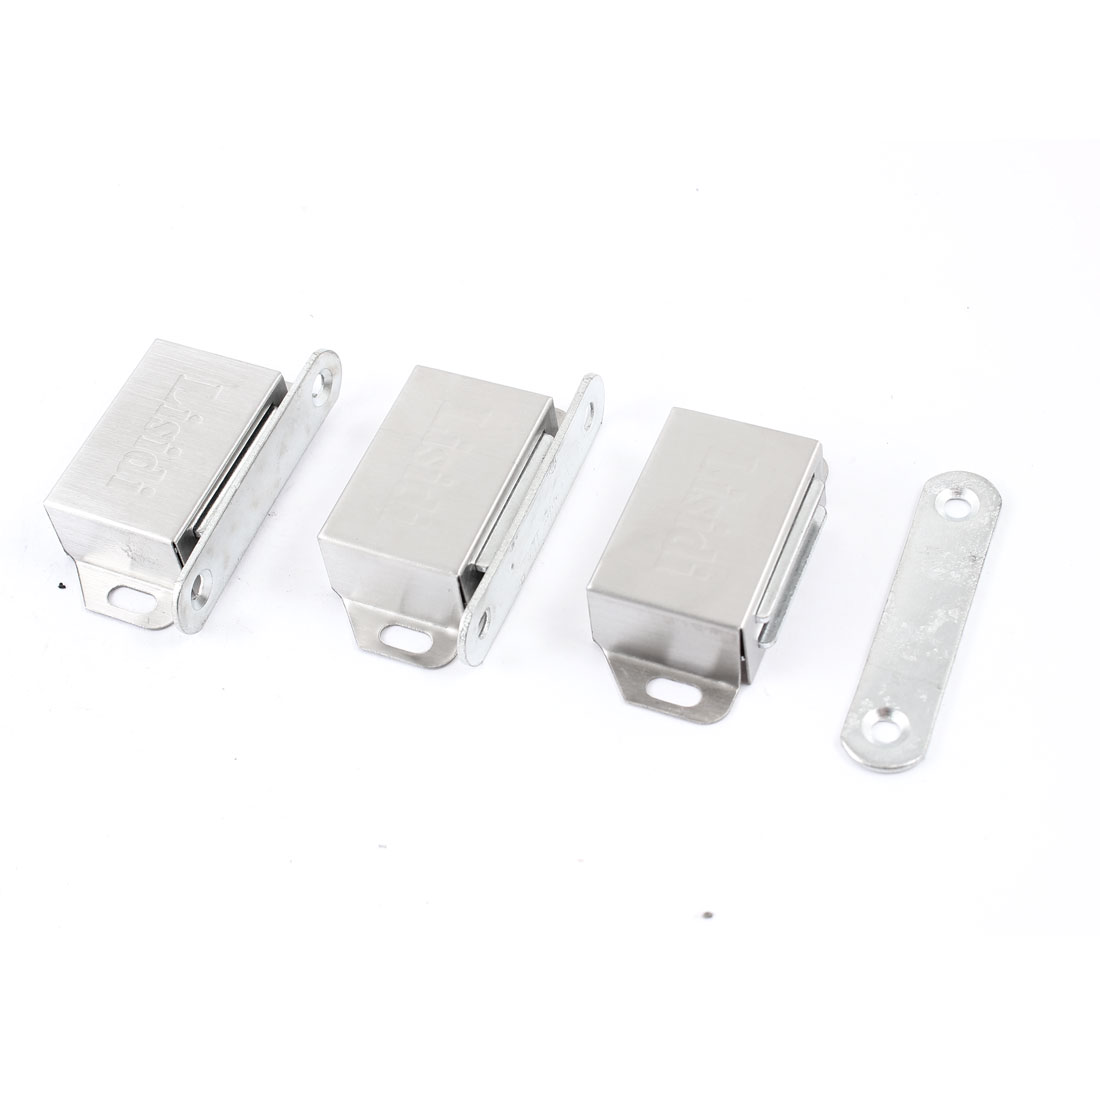 "3 Pcs Stainless Steel Cupboard Door Magnetic Catch Latch 2.2"" Length"